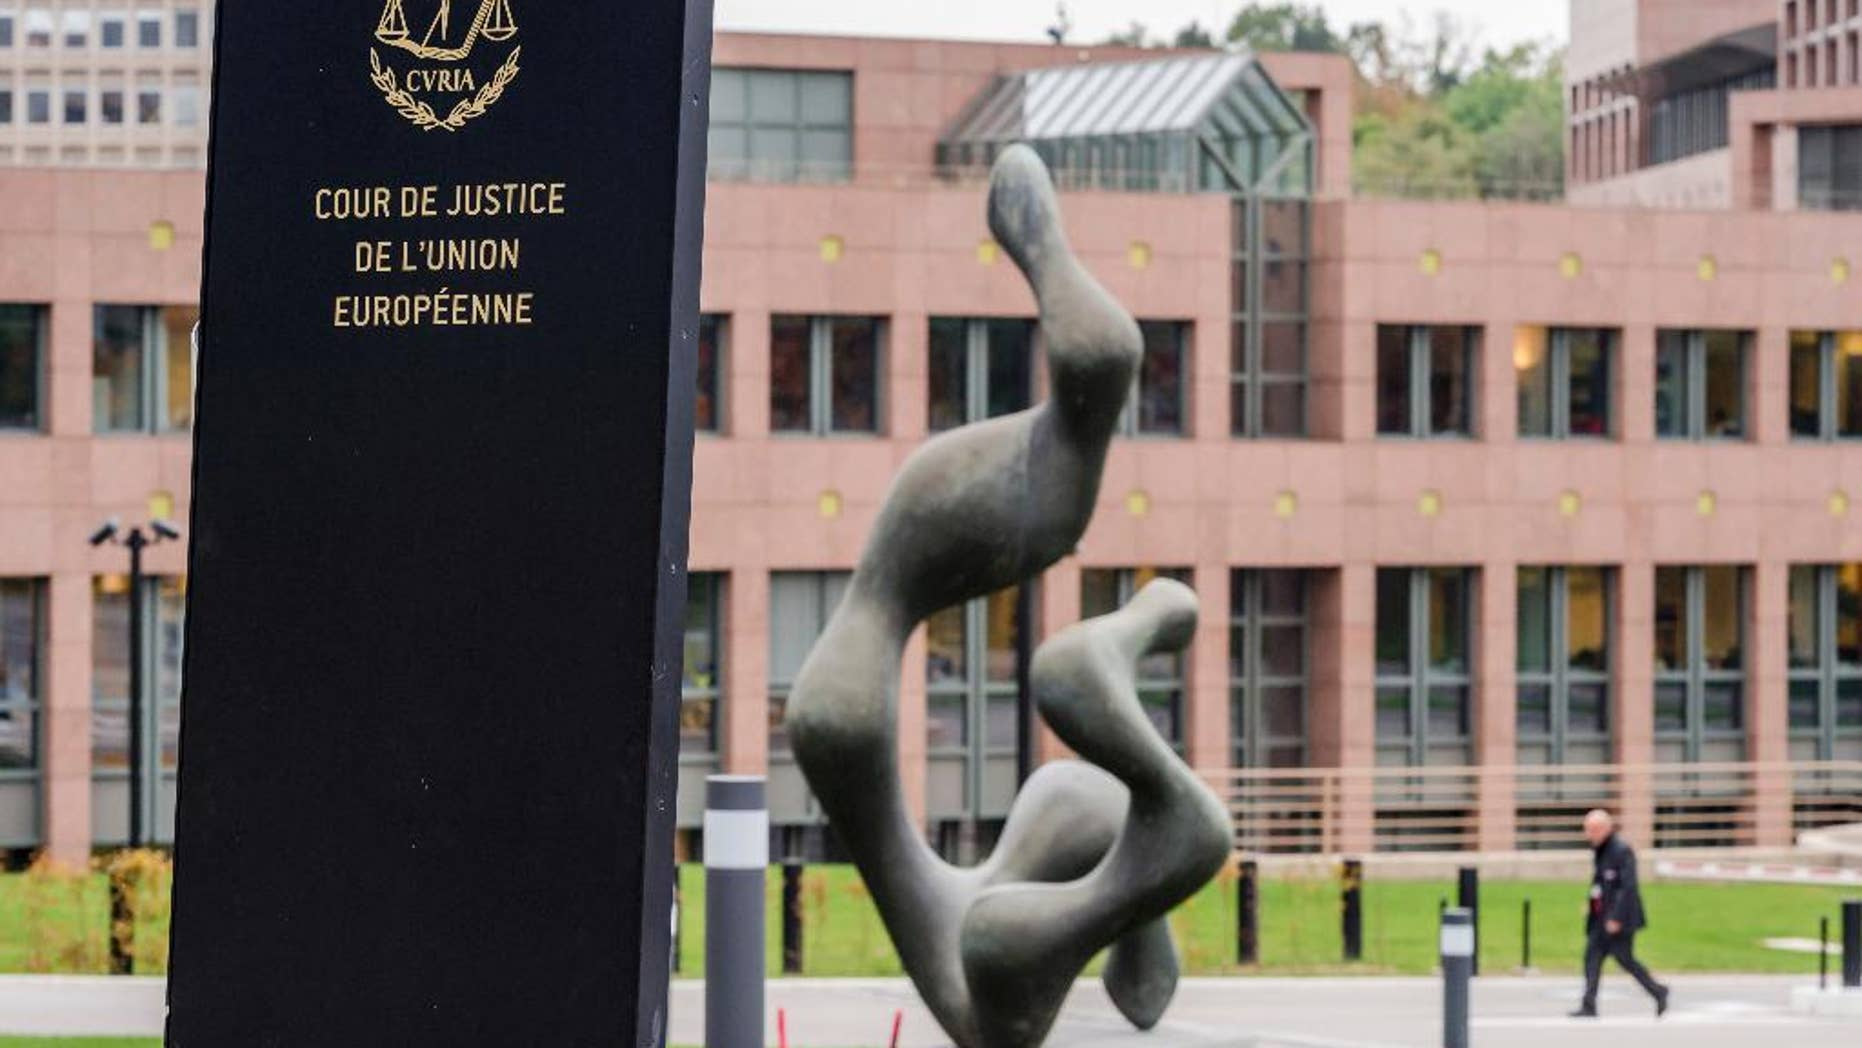 FILE - In this  Oct. 5, 2015 file photo, a man walks by the European Court of Justice in Luxembourg. The European Court of Justice ruled on Tuesday, Jan. 31, 2017, that an asylum request can be rejected if the person seeking protection has links to a terrorist group. (AP Photo/Geert Vanden Wijngaert, File)